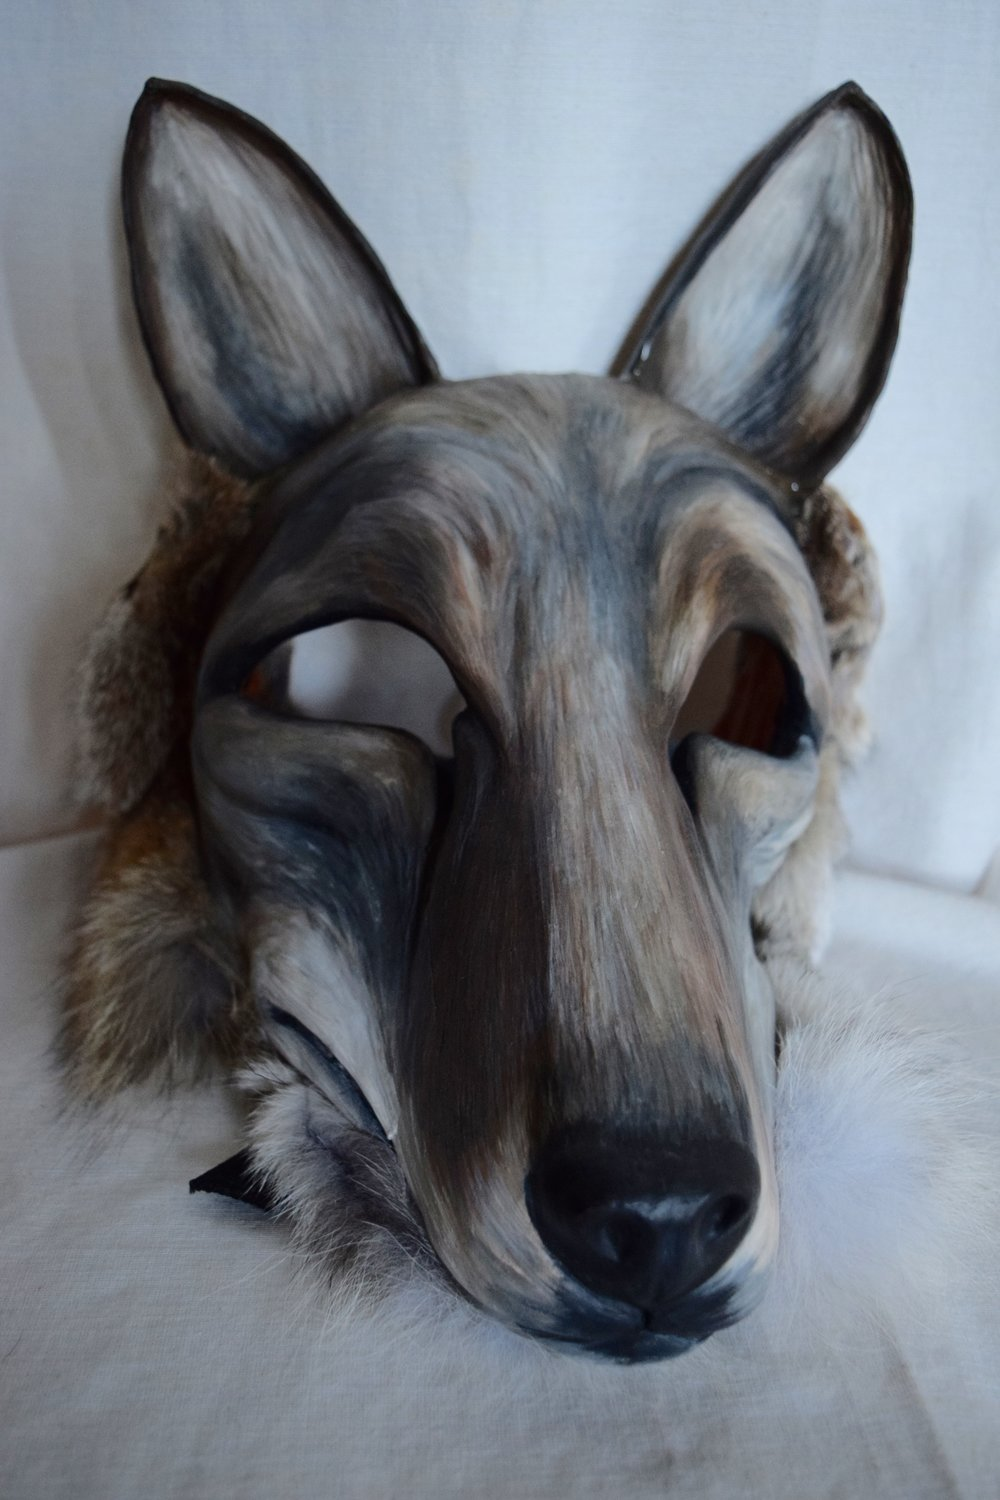 Coyote, 2015. Clay, roadkill coyote hide, acrylic